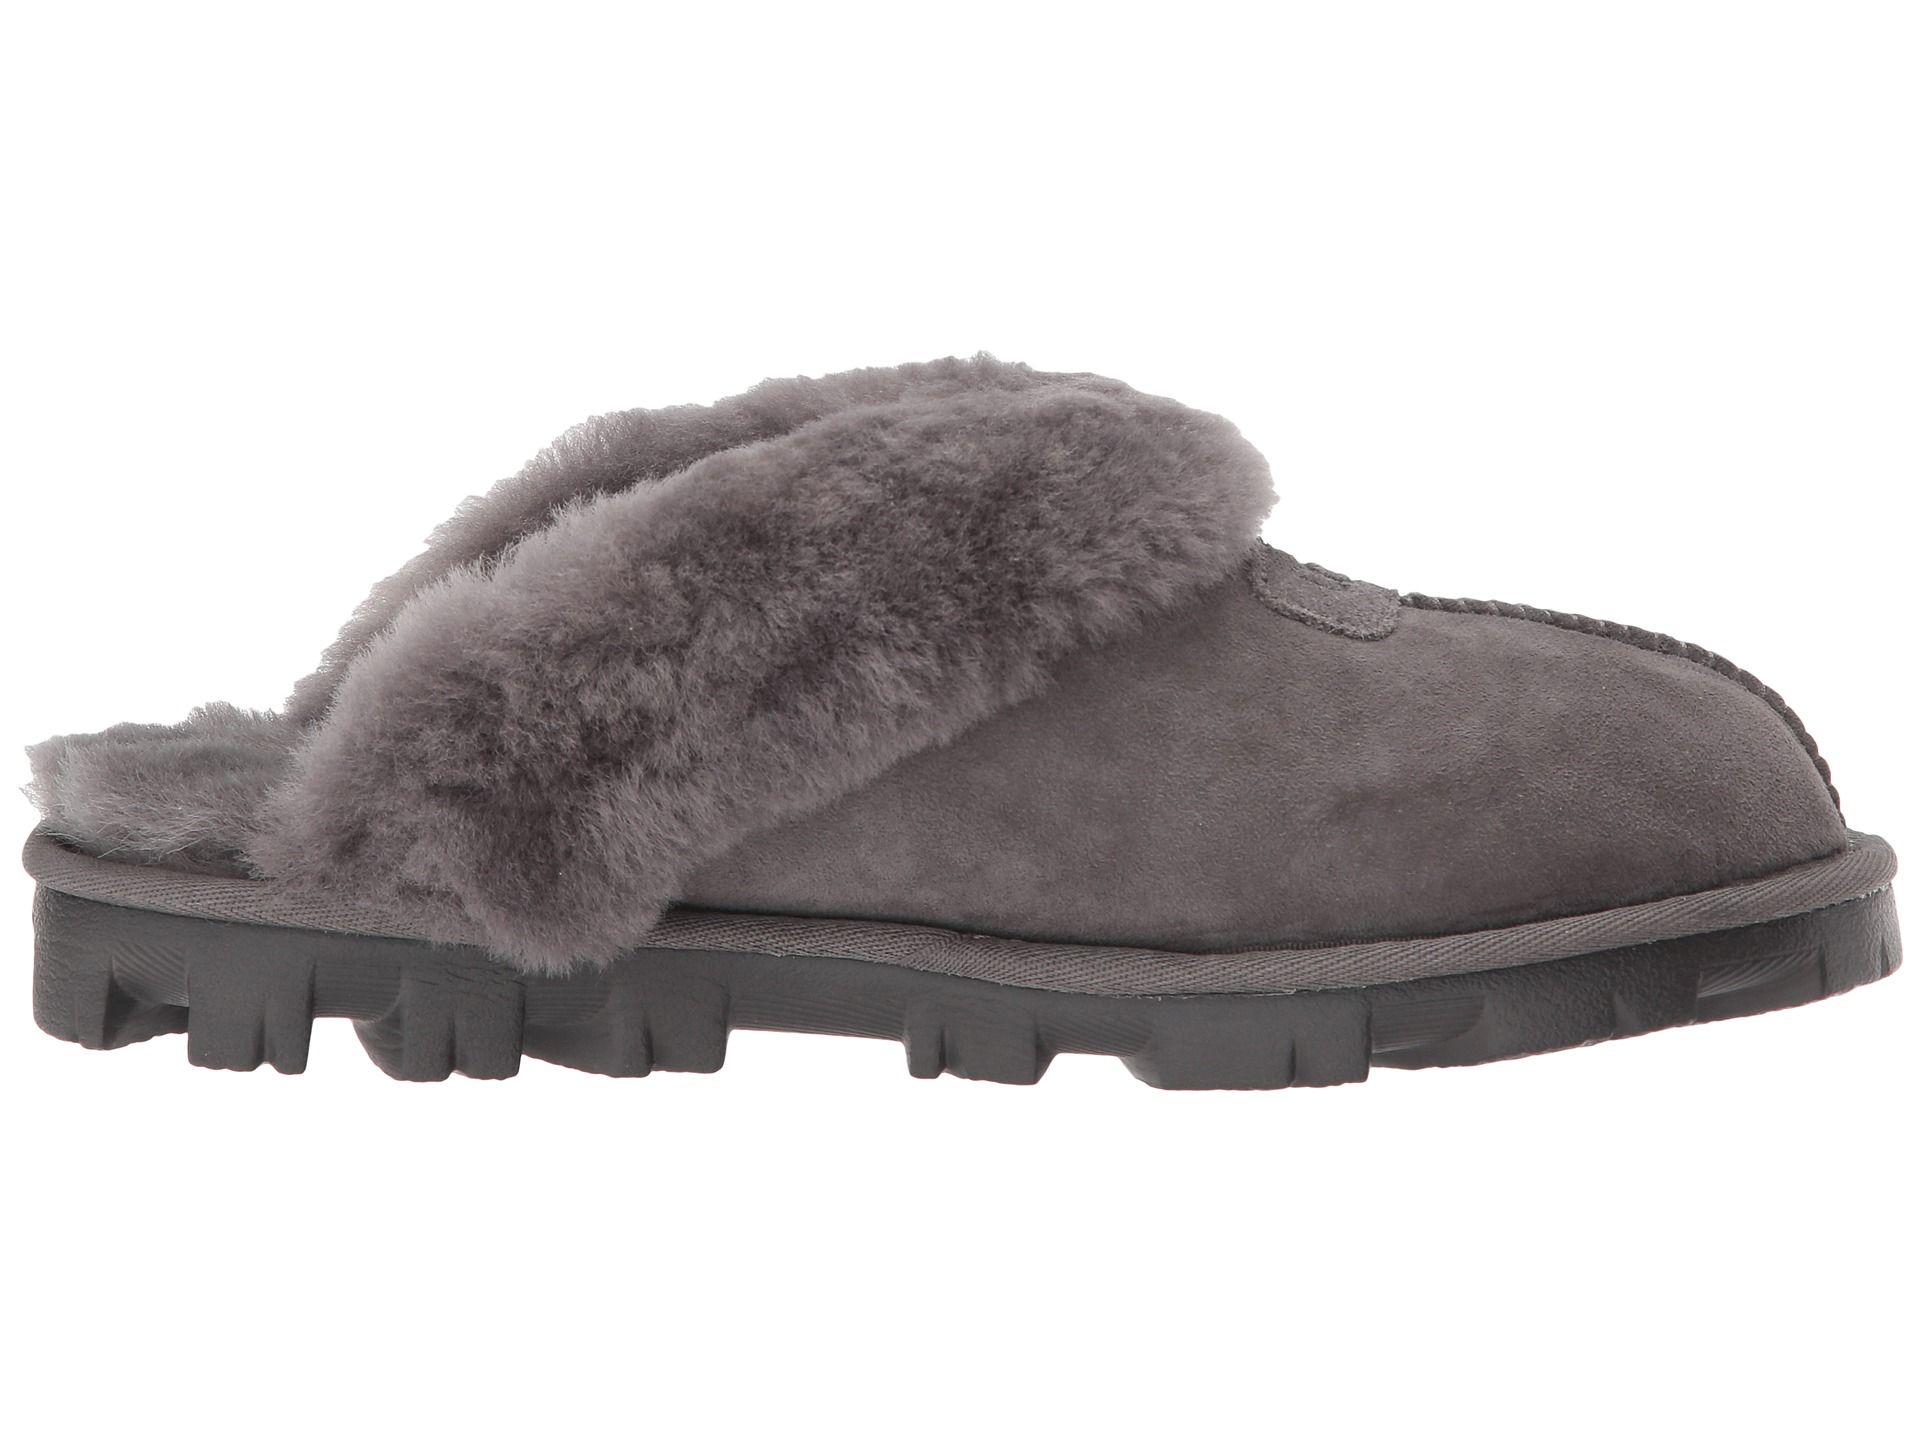 033614481 Grey Ugg Coquette Slippers - cheap watches mgc-gas.com